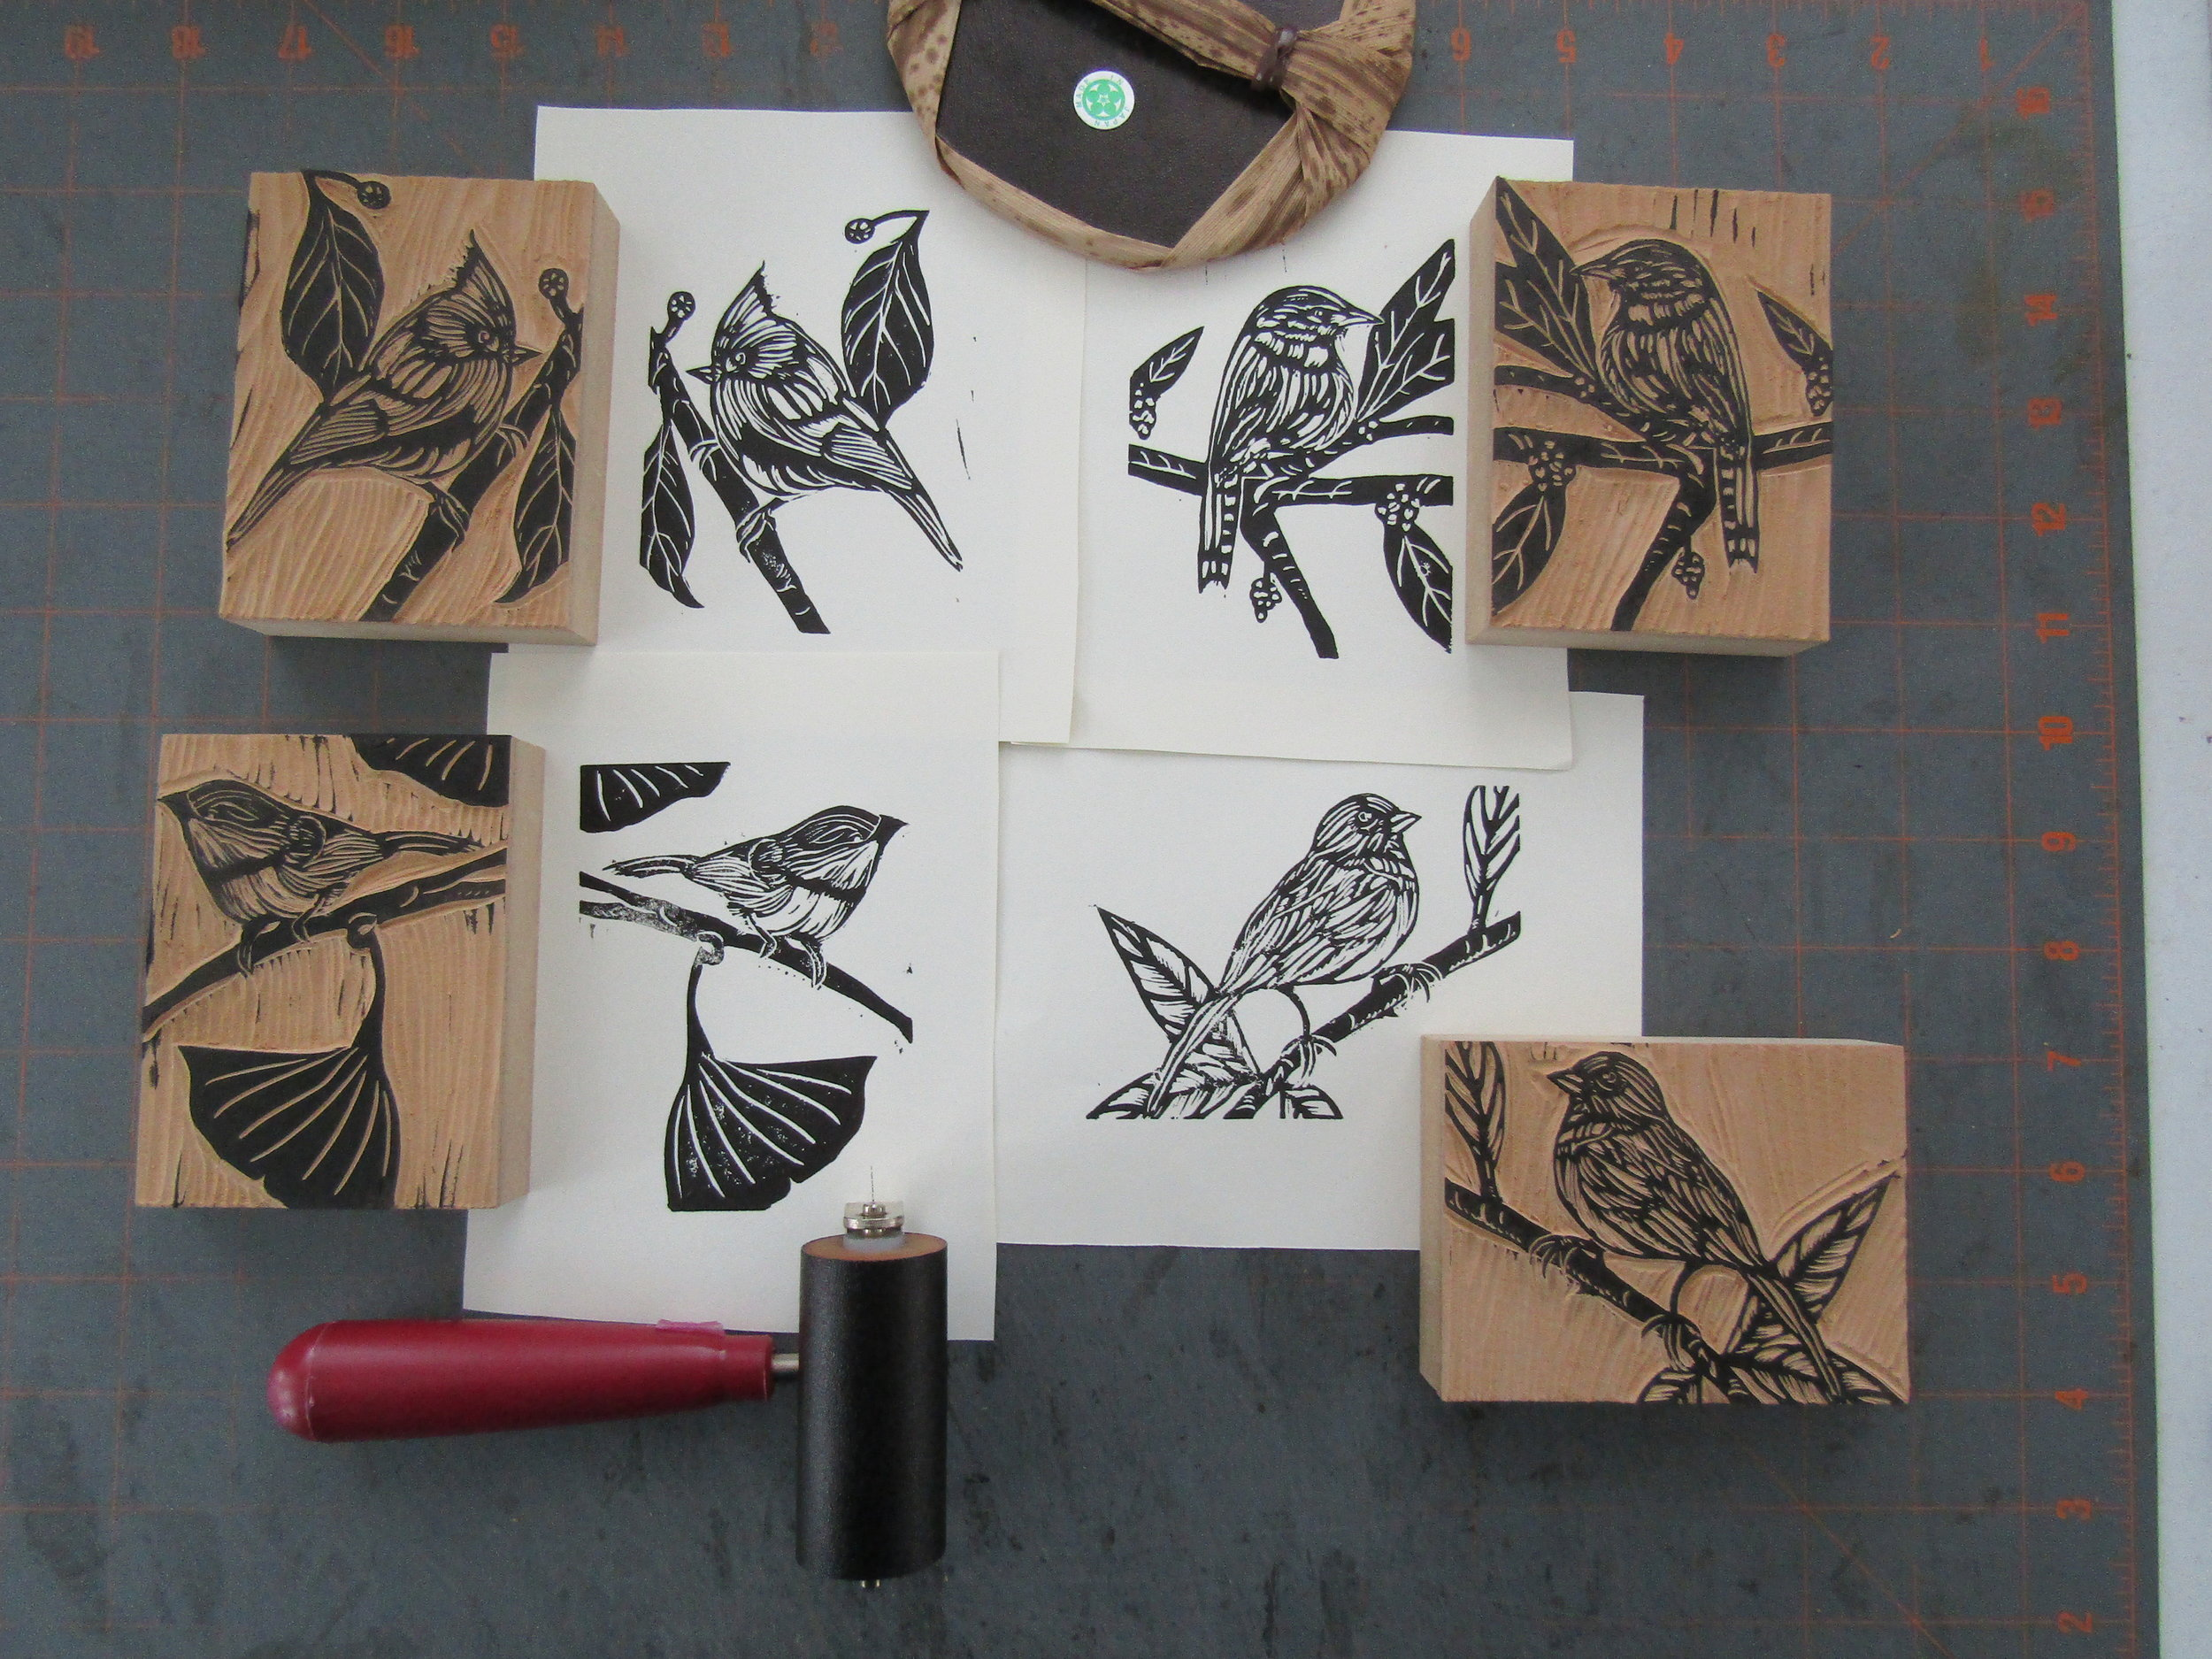 When all four birds were carved and proofed; I decided to print a group of blank greeting cards on chip board.